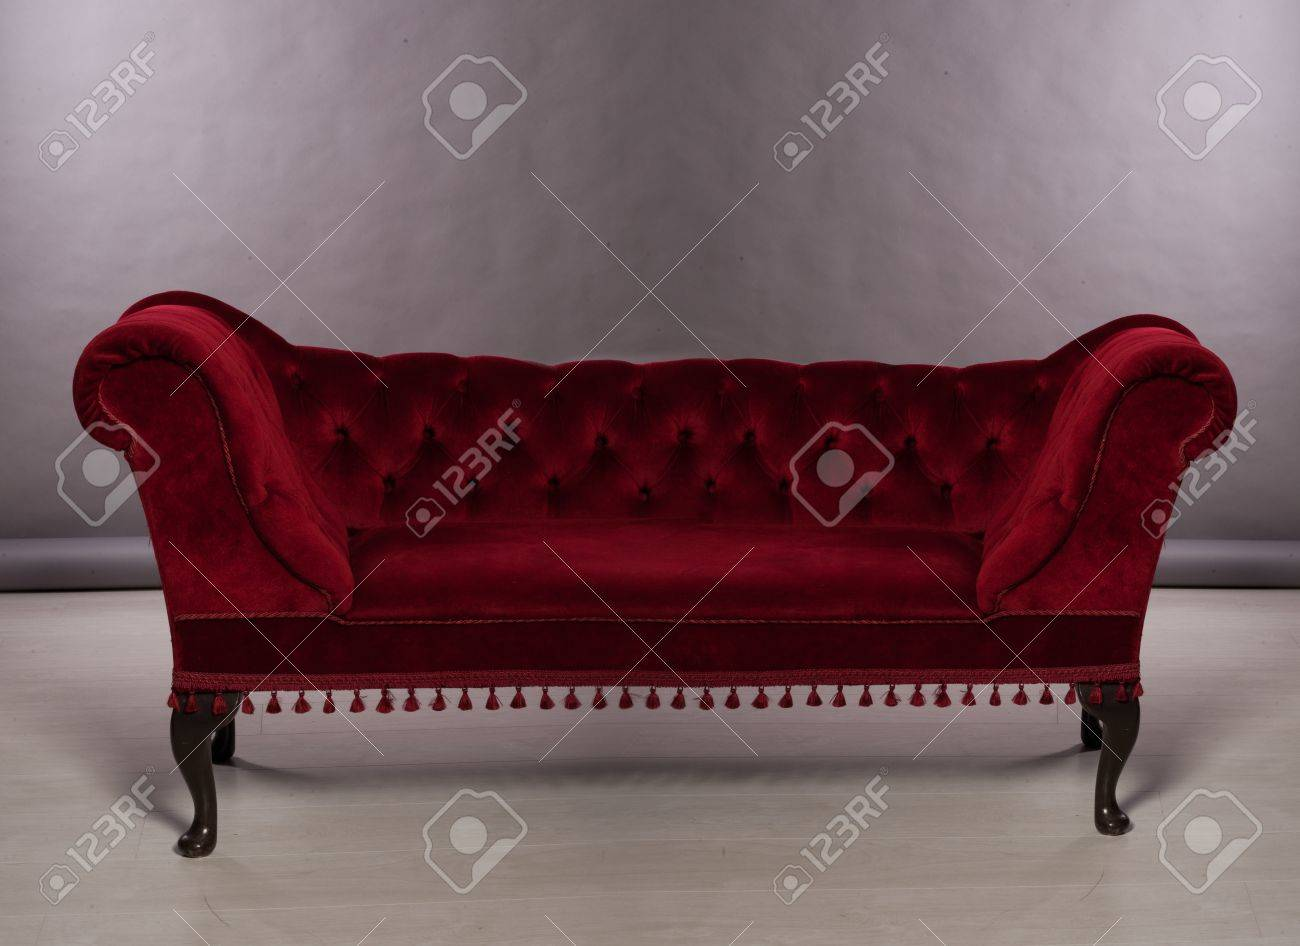 Upholstered chesterfield sofa with a button back in deep maroon..